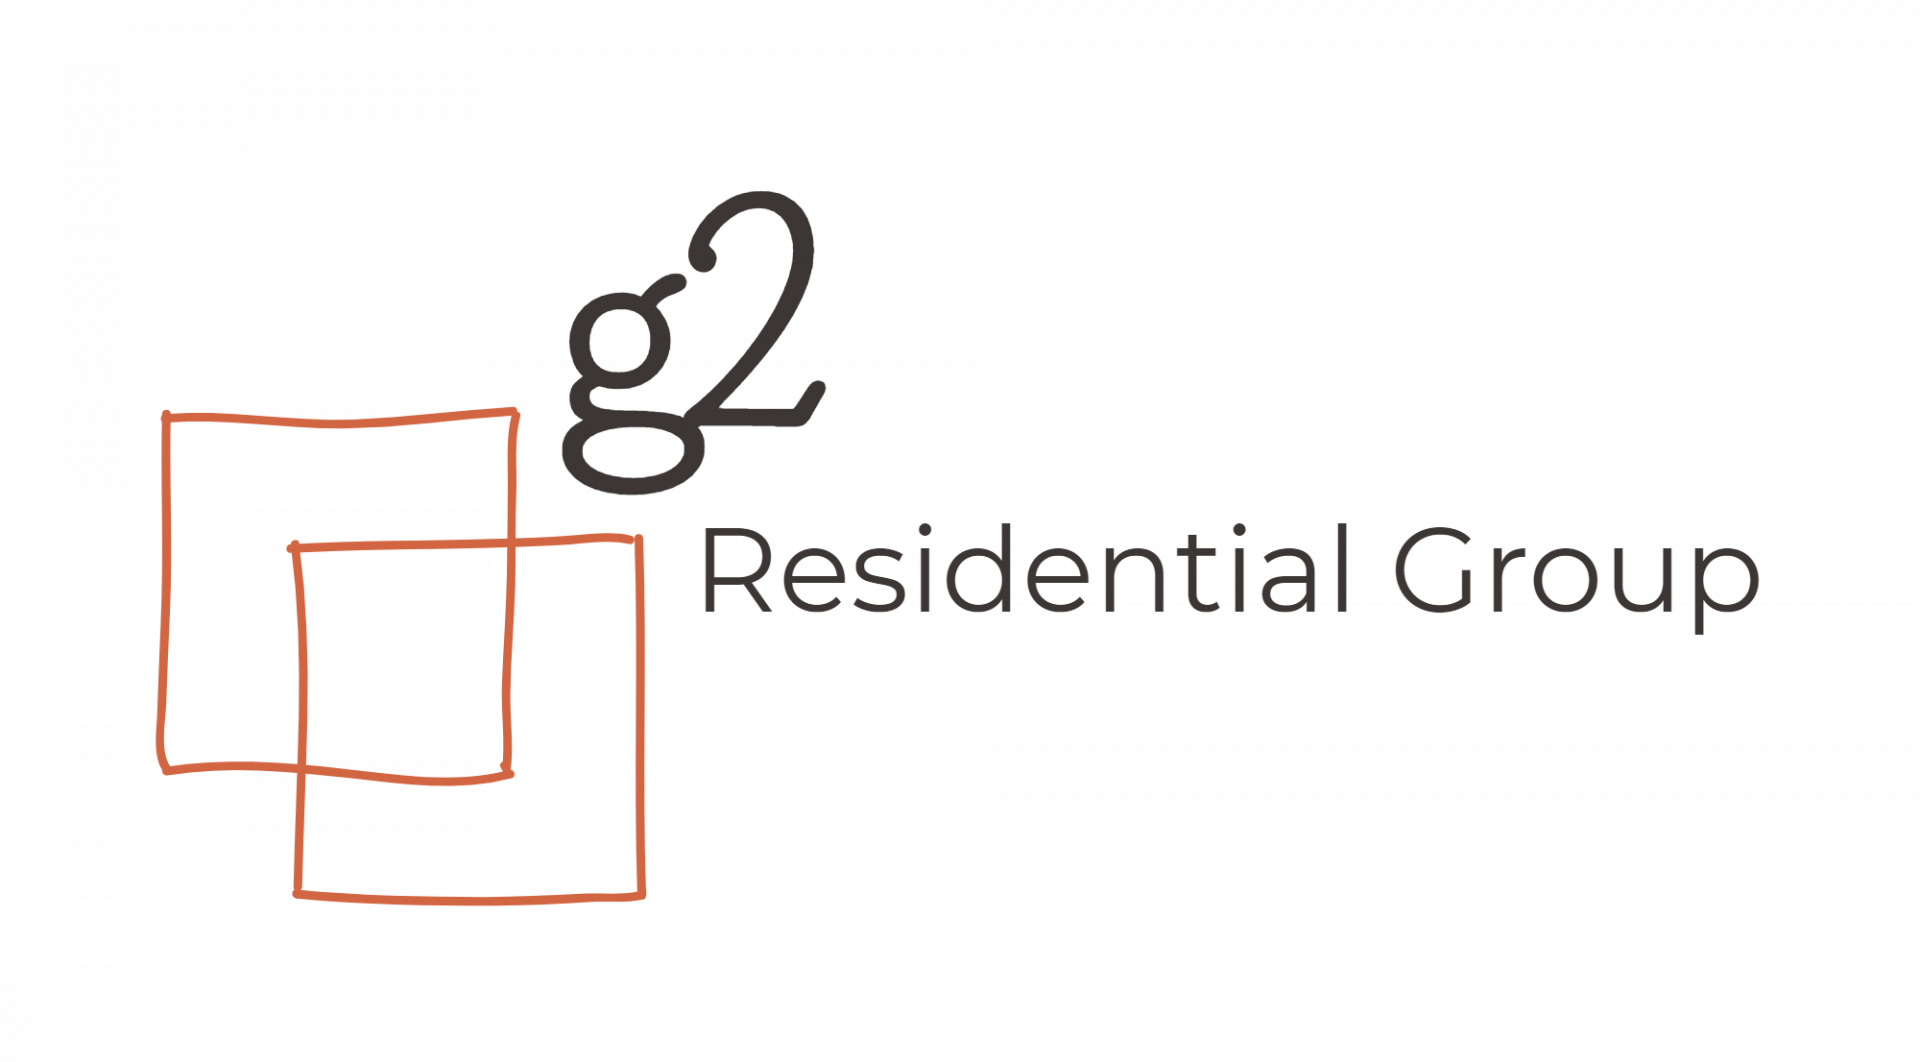 g2 Residential Group logo